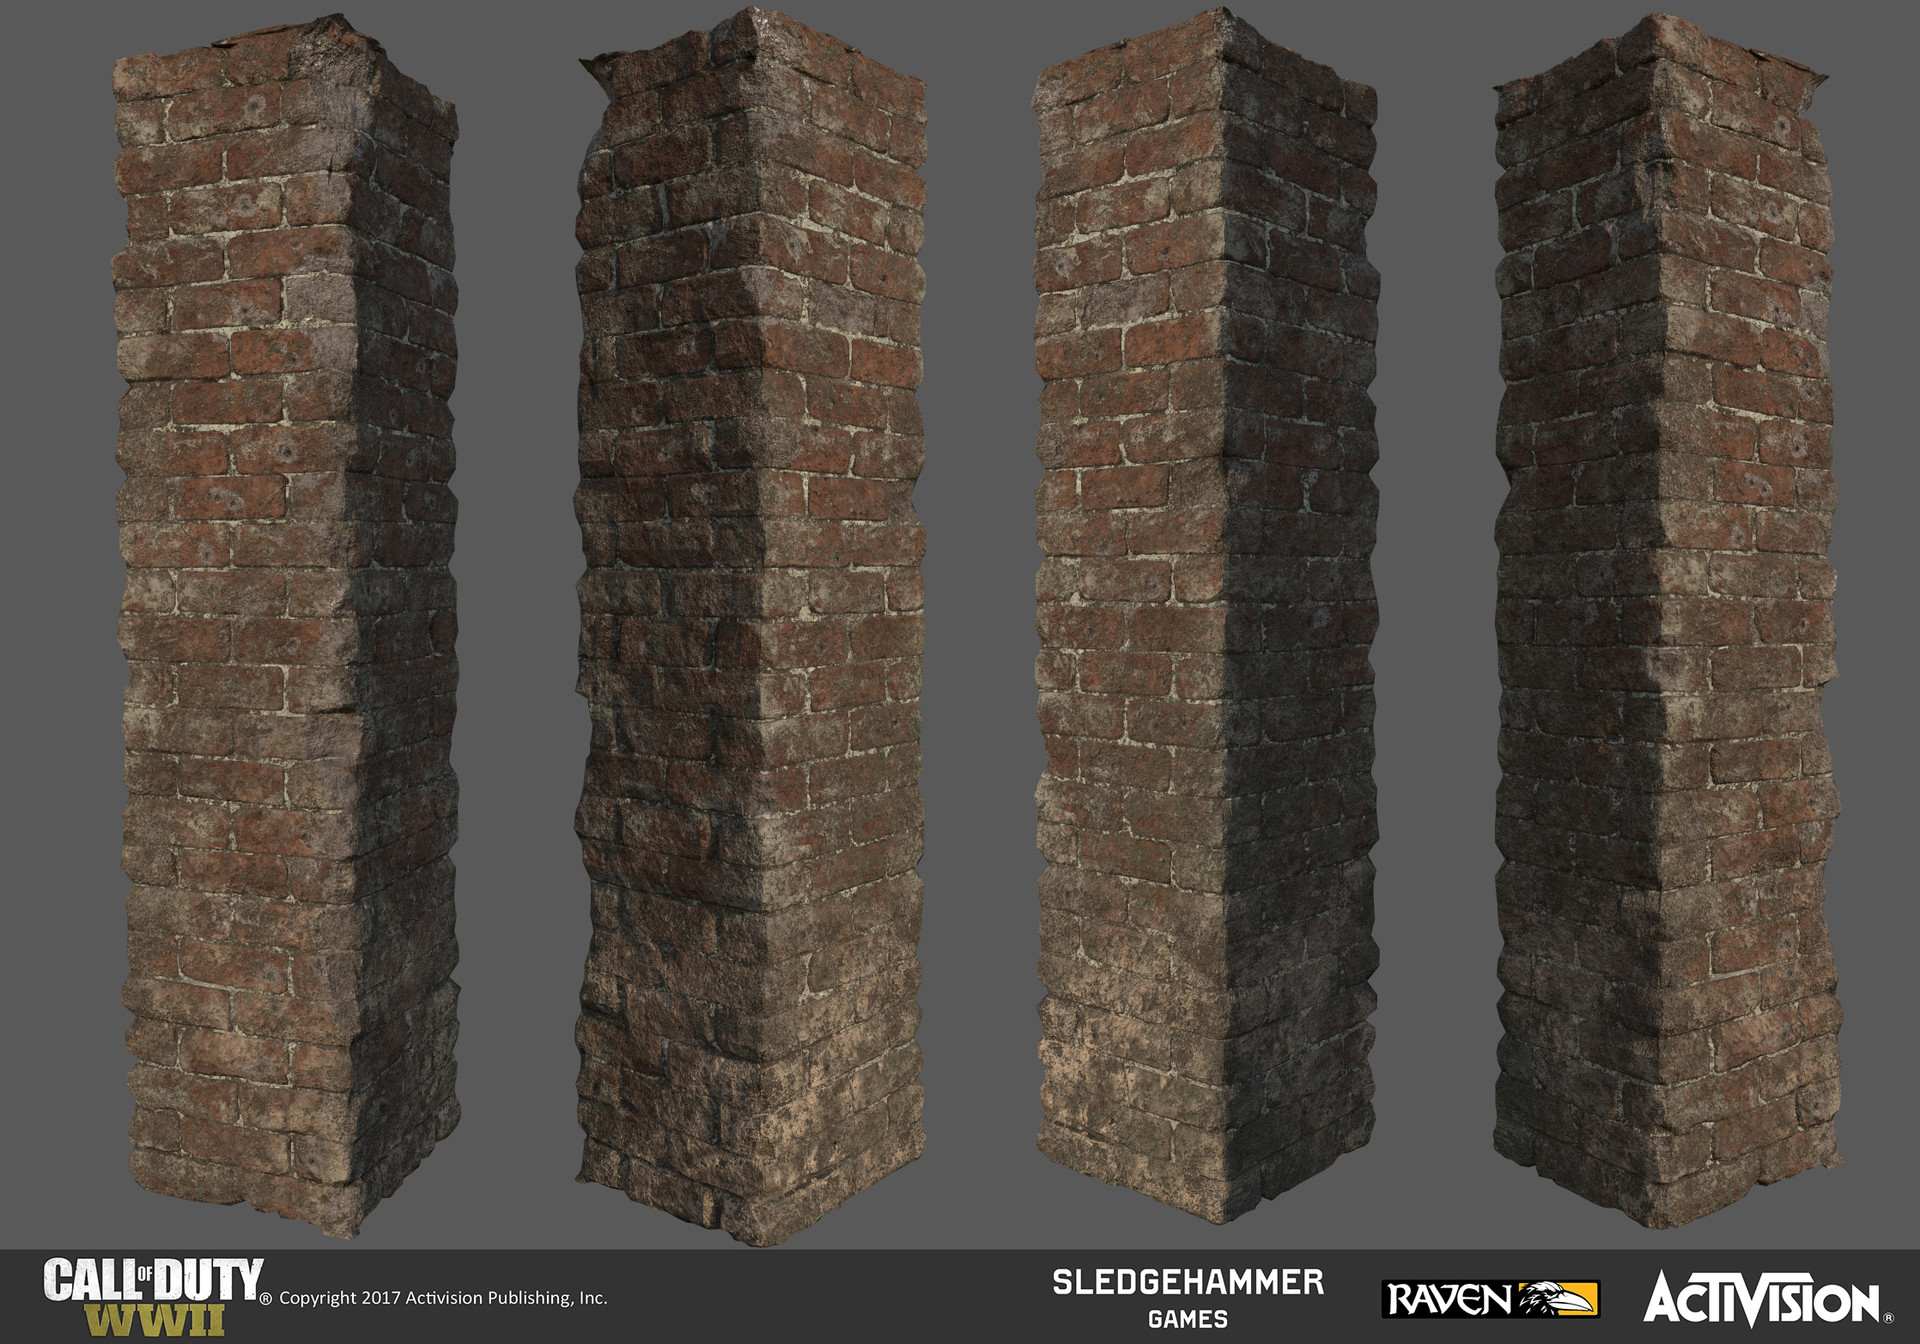 Damaged brick column model after I textured it in Substance Painter.